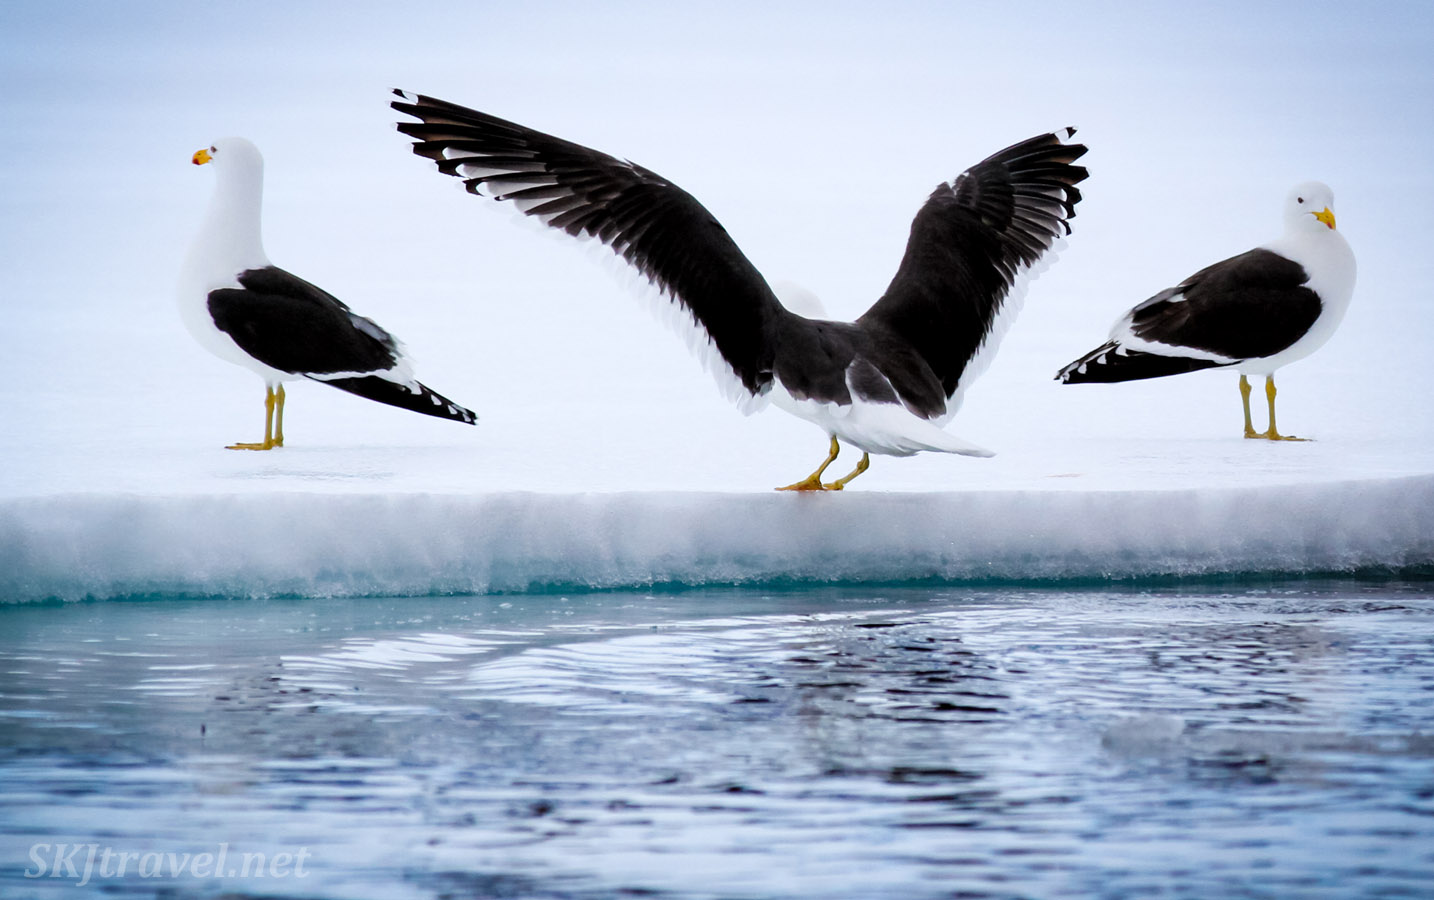 Three kelp gull birds on an ice shelf in Antarctica. One looking left, one looking right, and one taking off for flight.